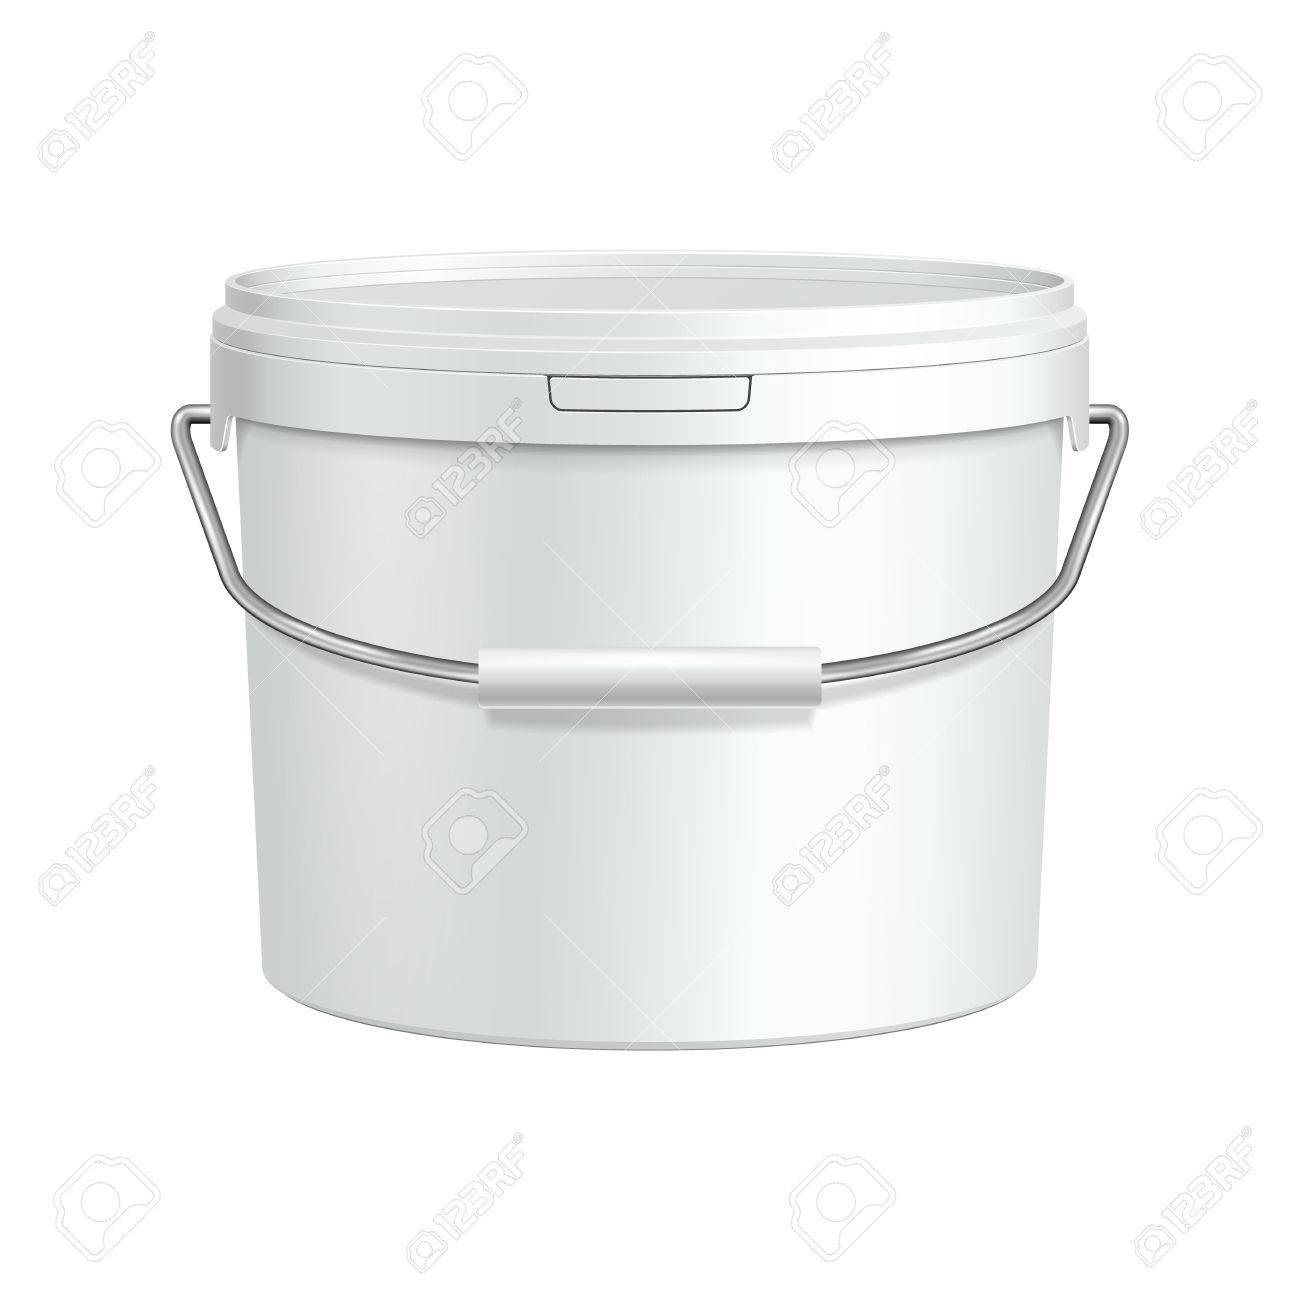 White Tub Paint Plastic Bucket Container With Metal Handle  Plaster, Putty, Toner  Ready For Your Design  Product Packing Vector EPS10 Stock Vector - 30405271